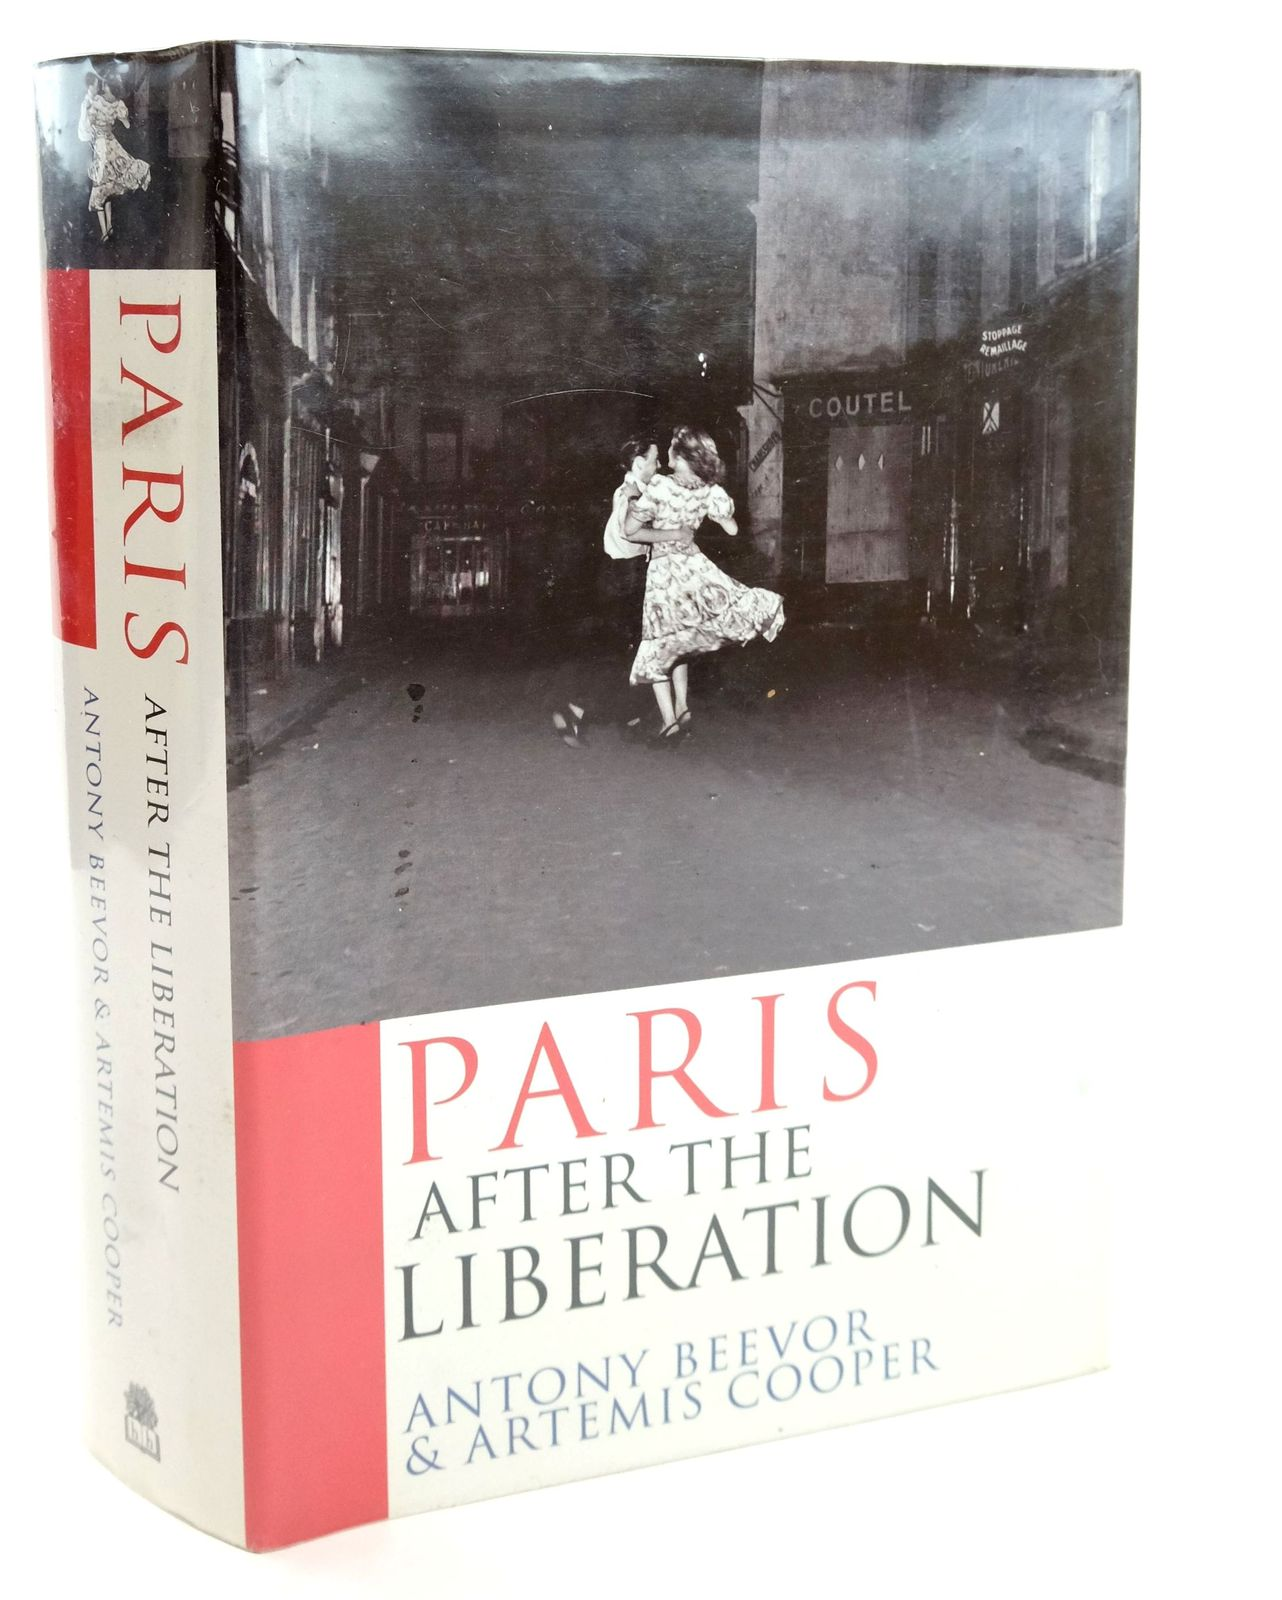 Photo of PARIS AFTER THE LIBERATION 1944-1949 written by Beevor, Antony Cooper, Artemis published by Hamish Hamilton (STOCK CODE: 1819404)  for sale by Stella & Rose's Books